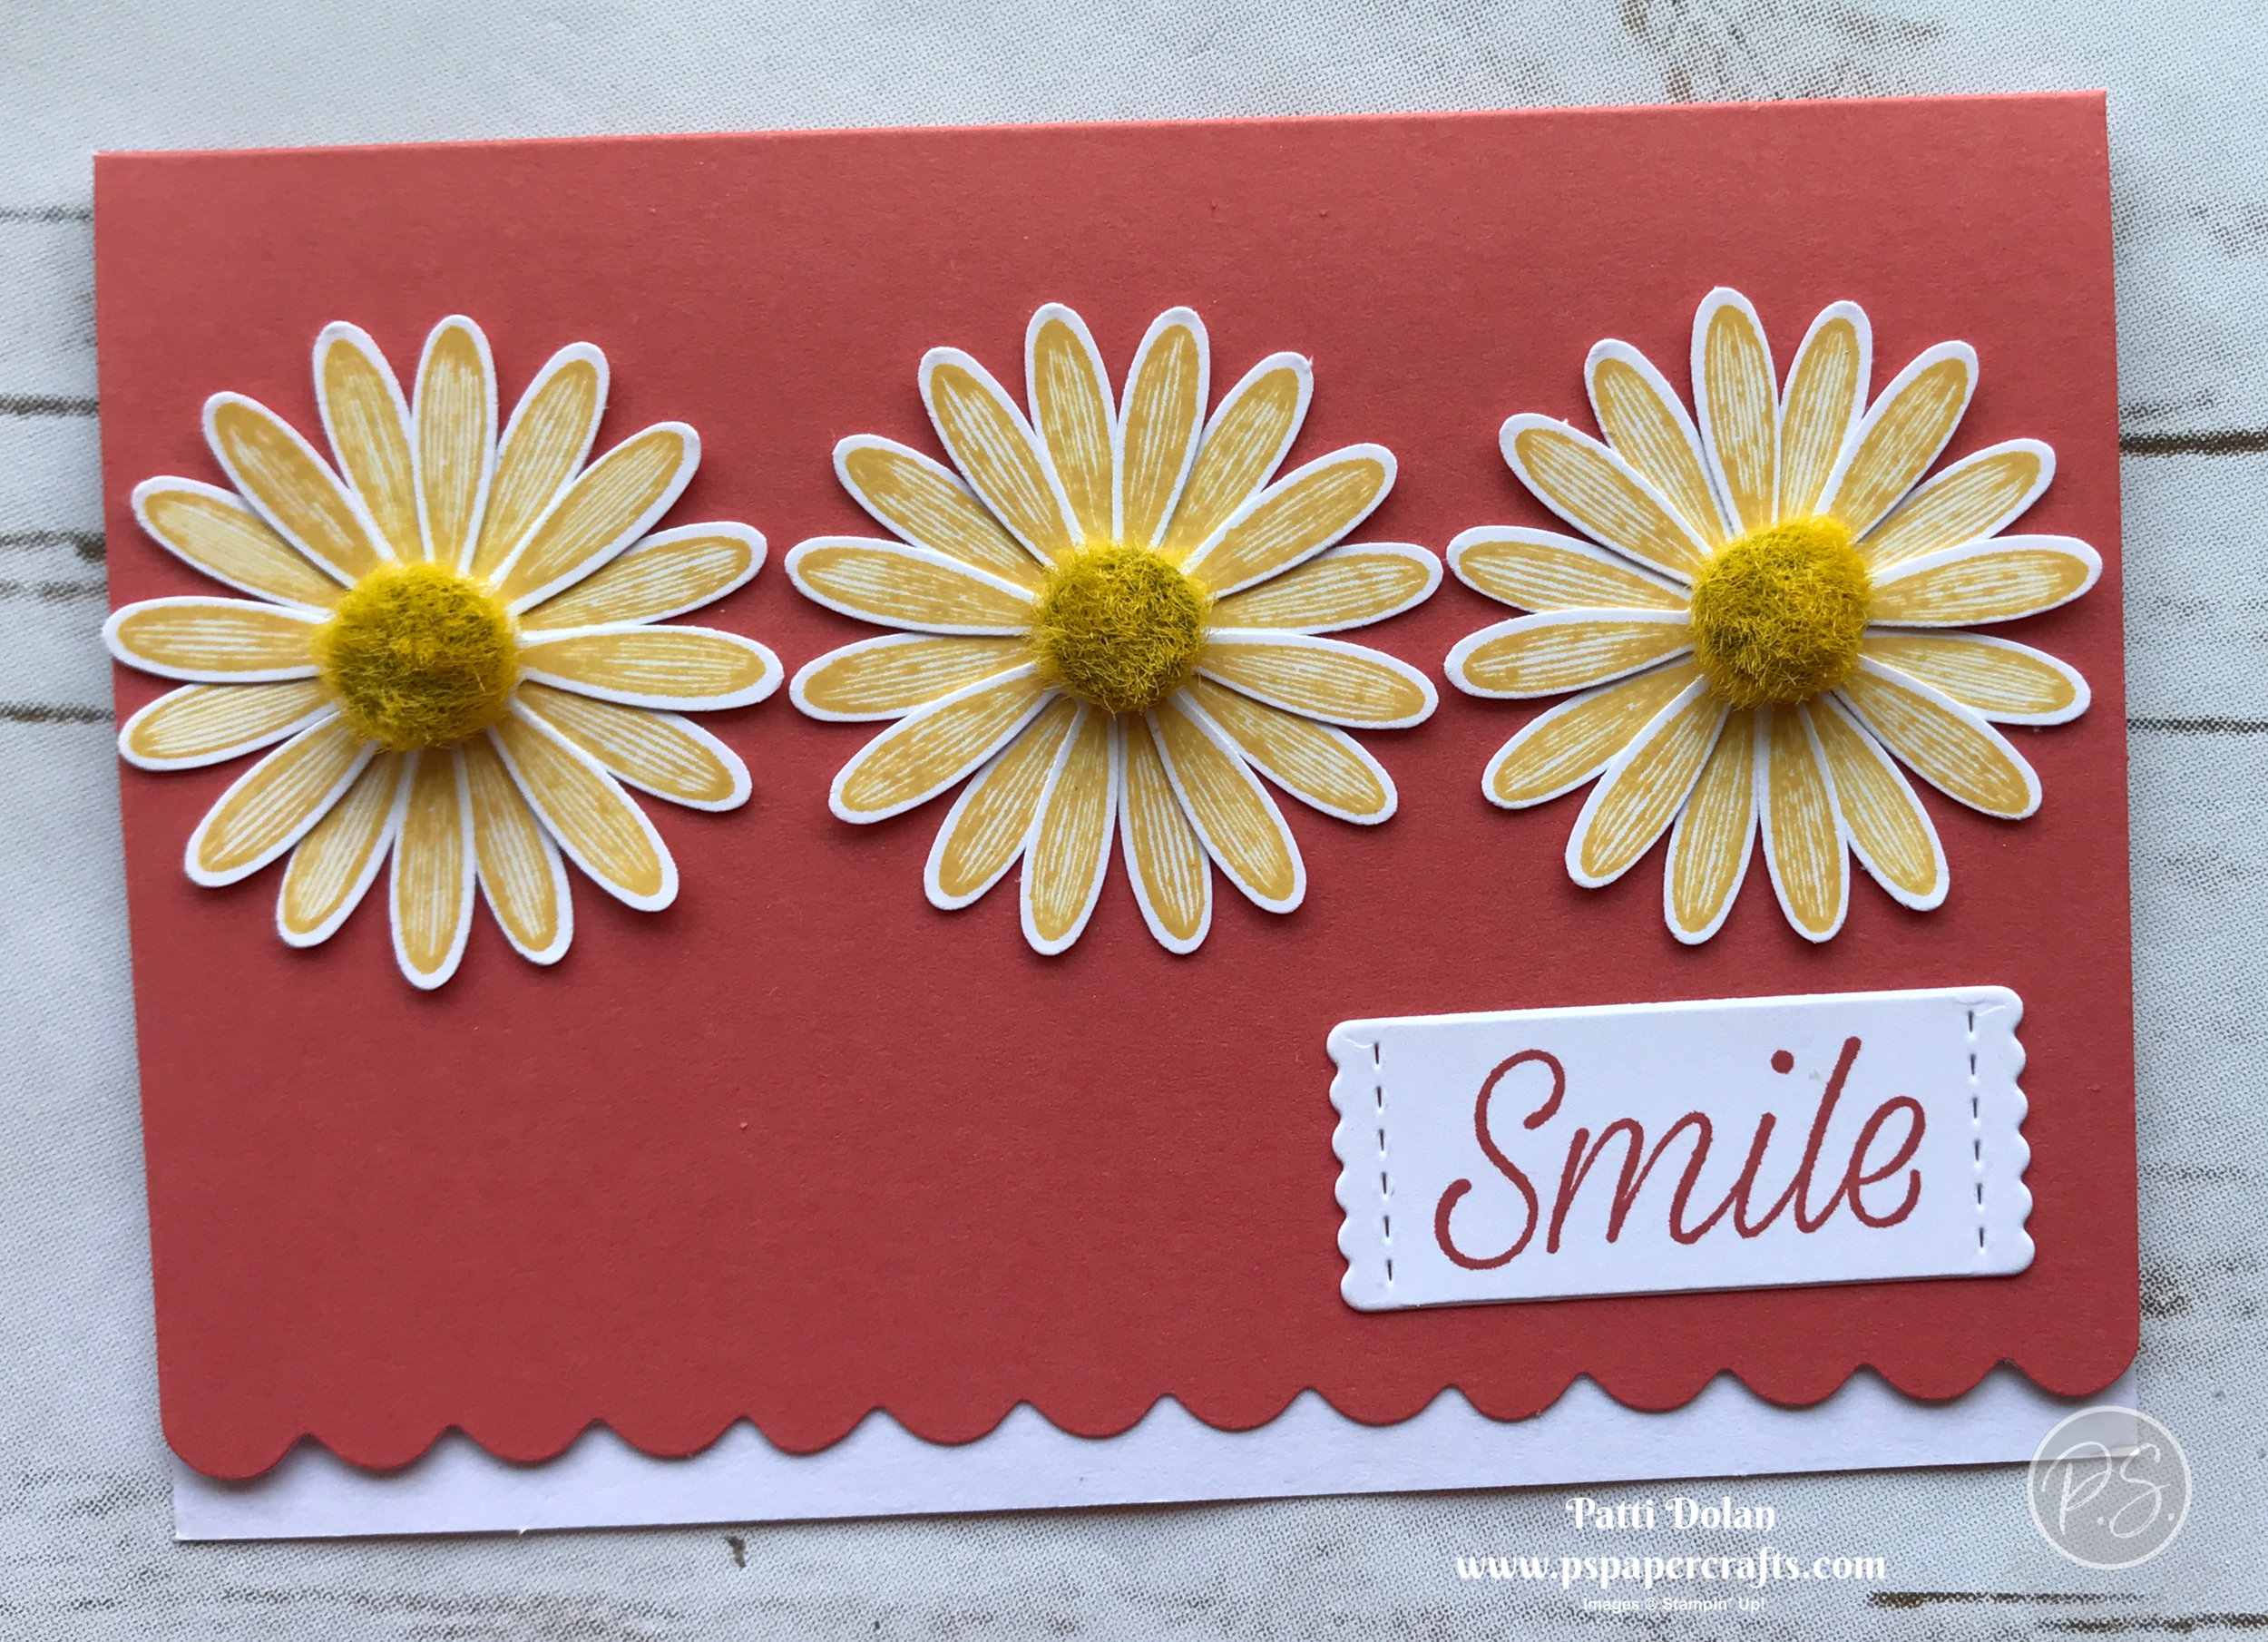 Scalloped Notecards Daisy Lane Terracotta2.jpg